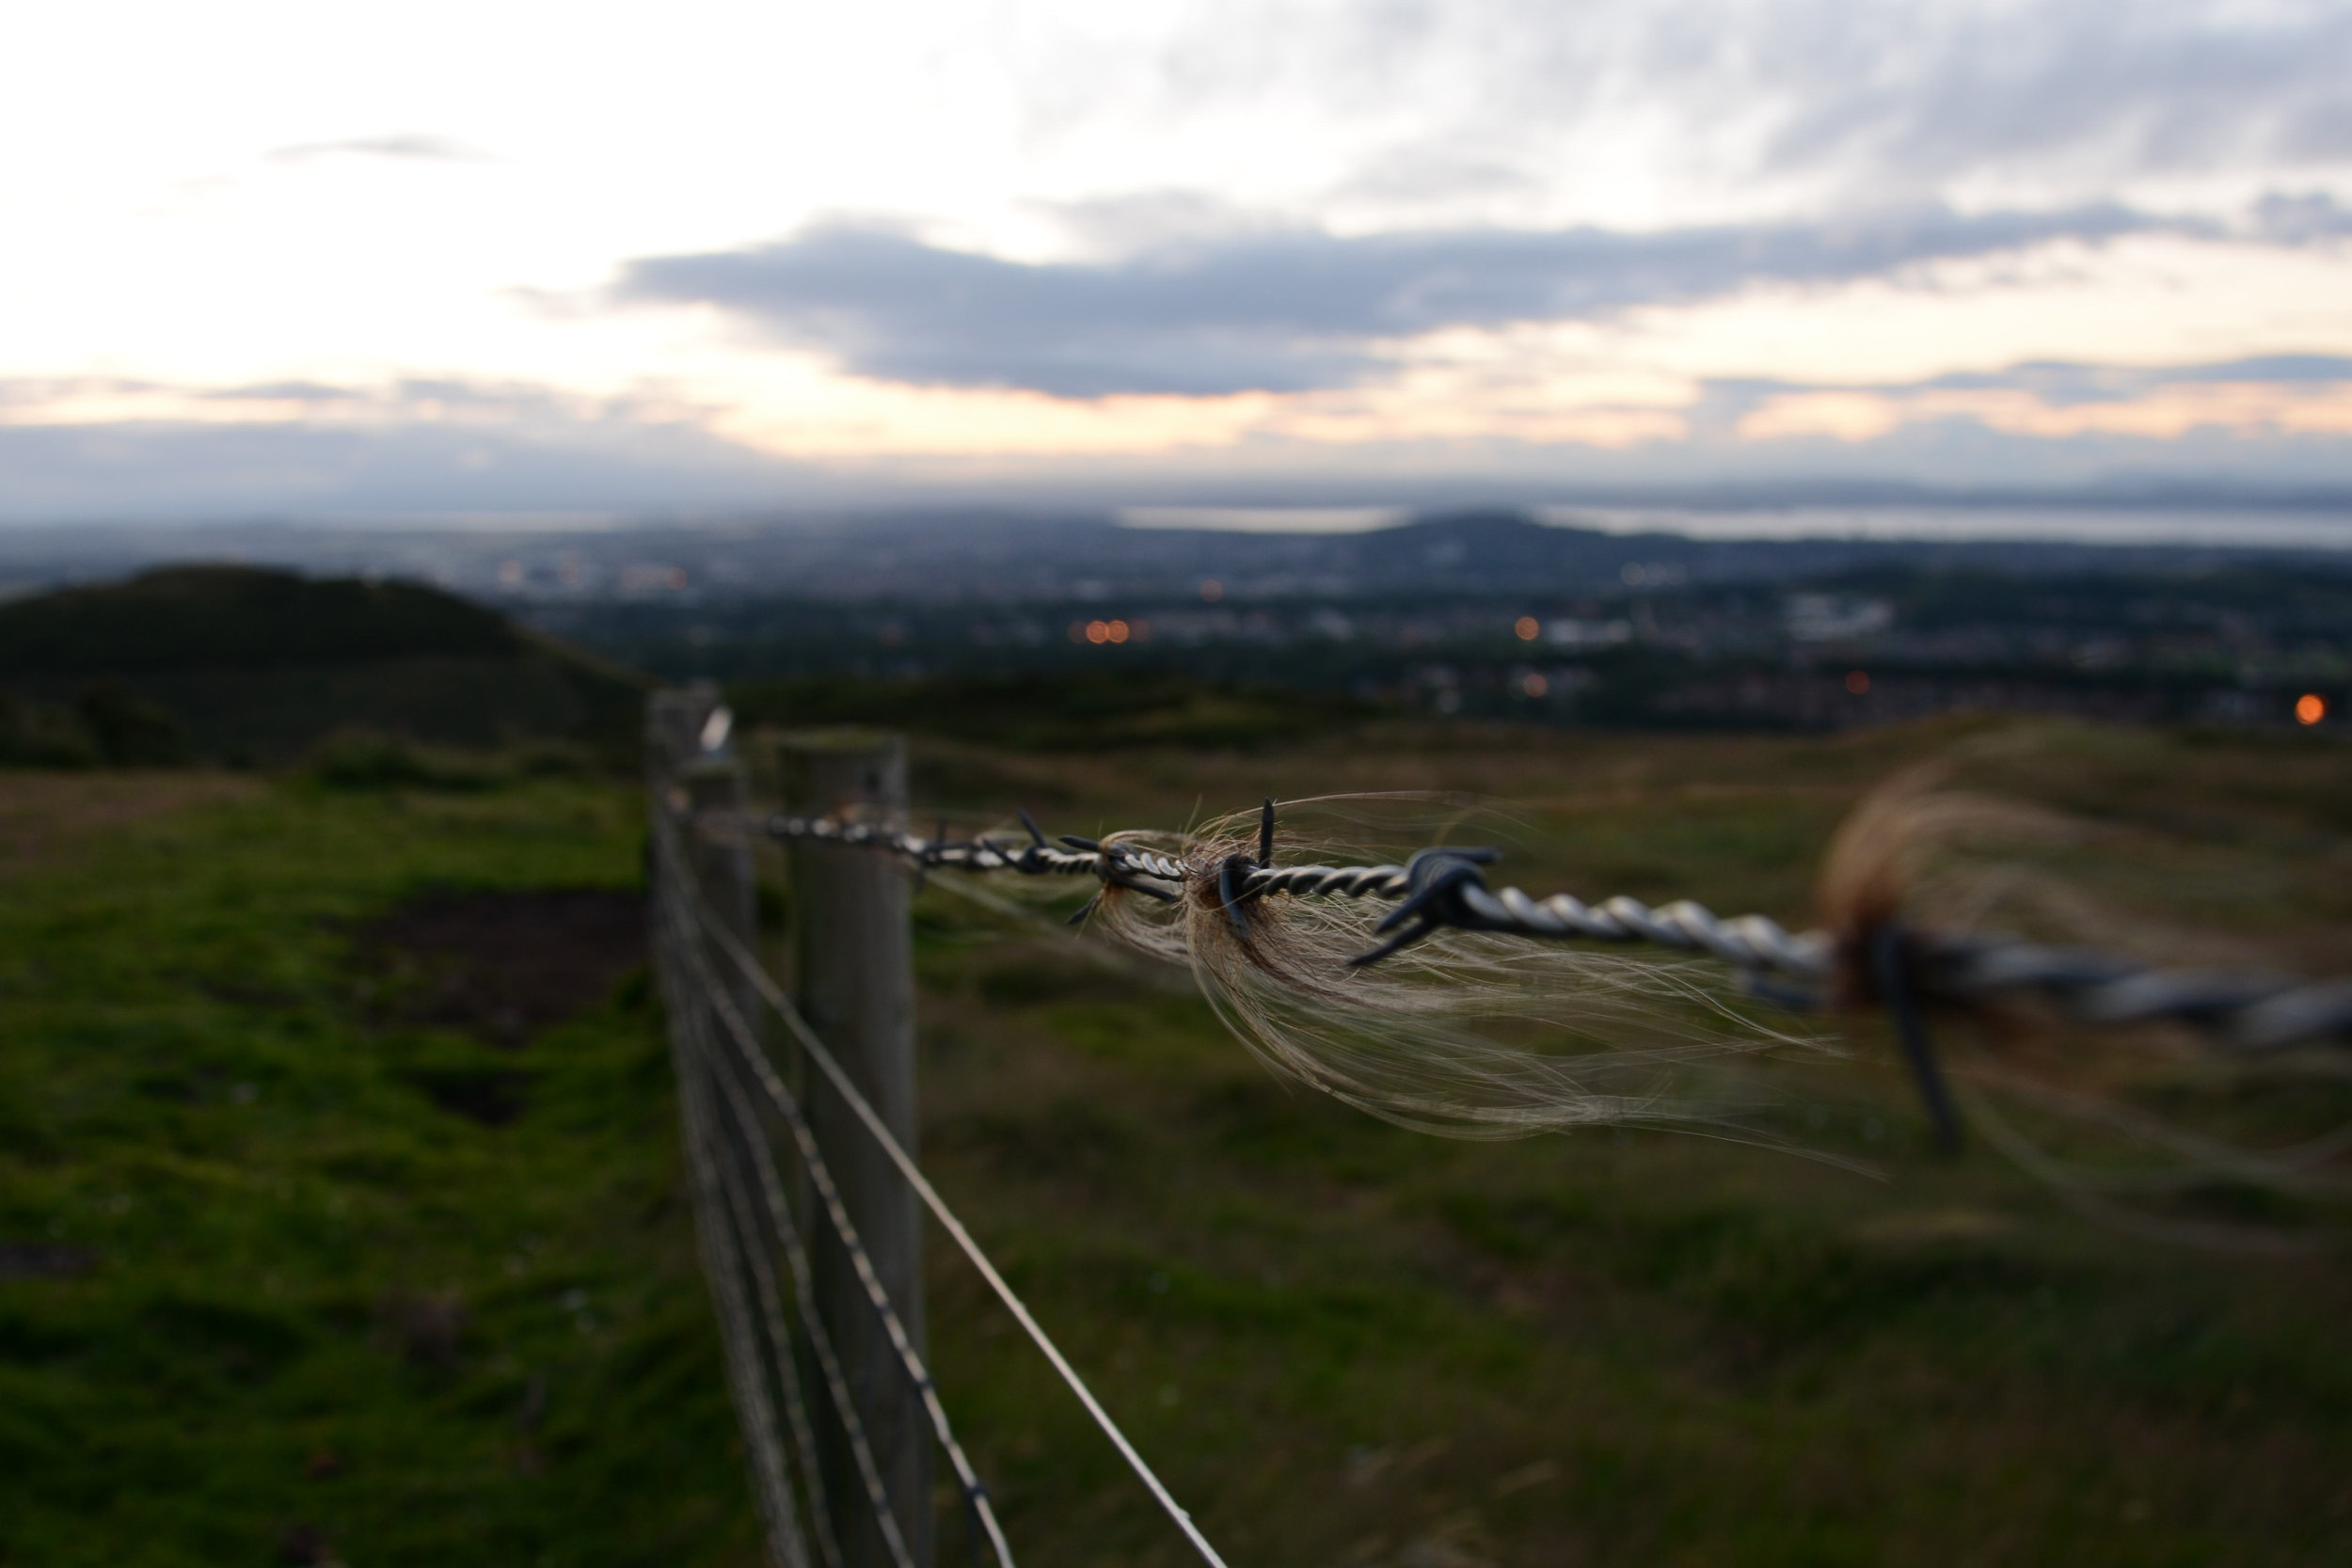 Cattle hair caught in barbed fence | Overlooking Firth of Forth and city life. Nikon D7100 (18-105mm f/3.5-5.6G ED VR Lens)